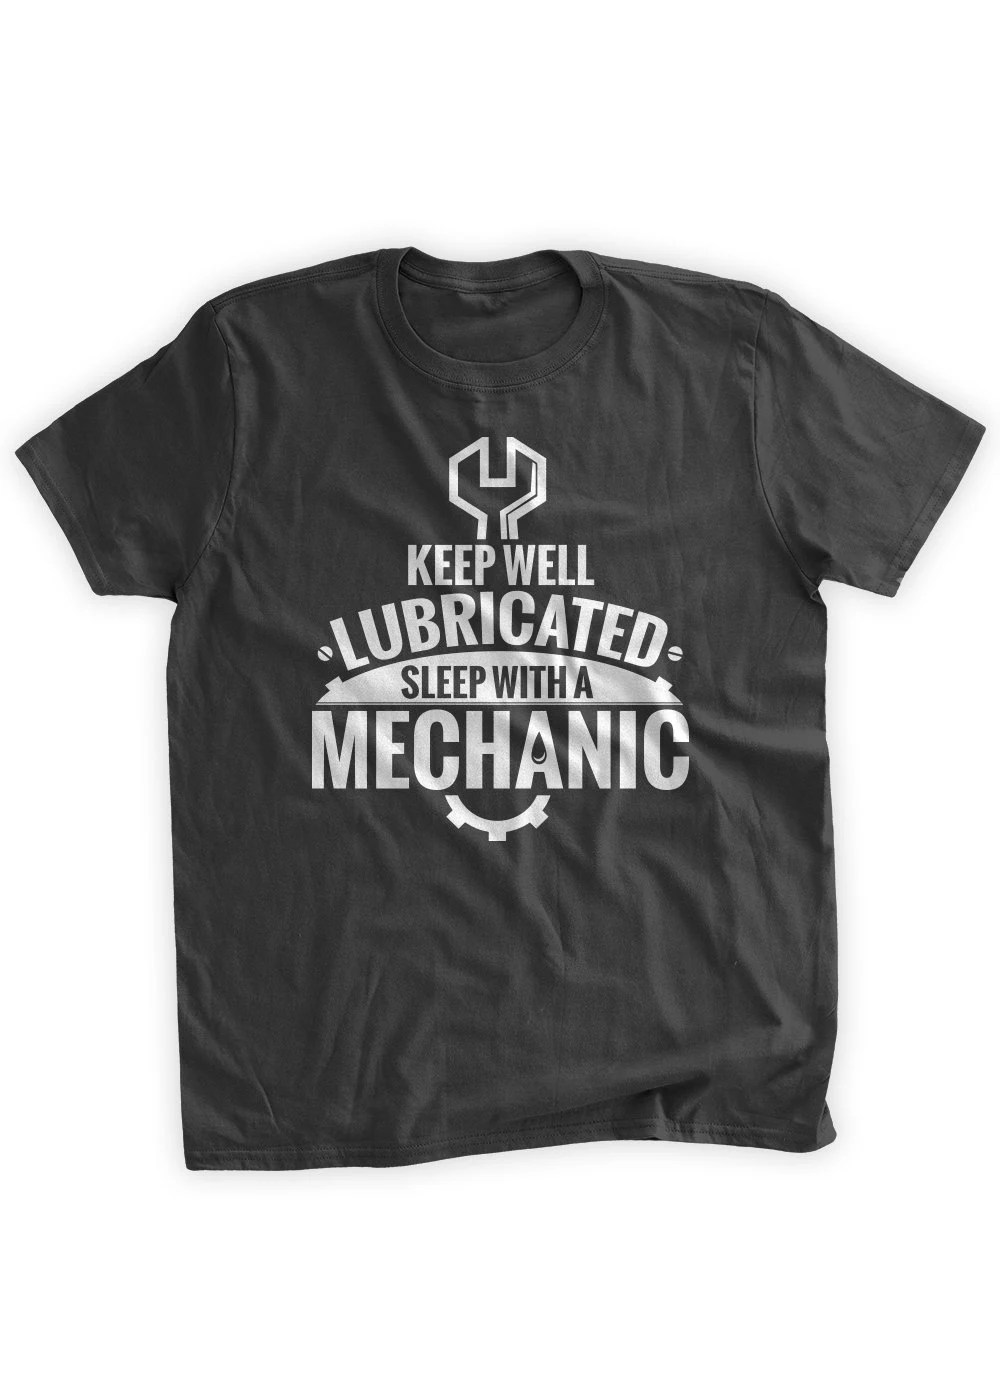 Keep Well Lubricated Sleep With A Mechanic T Shirt Funny Gifts